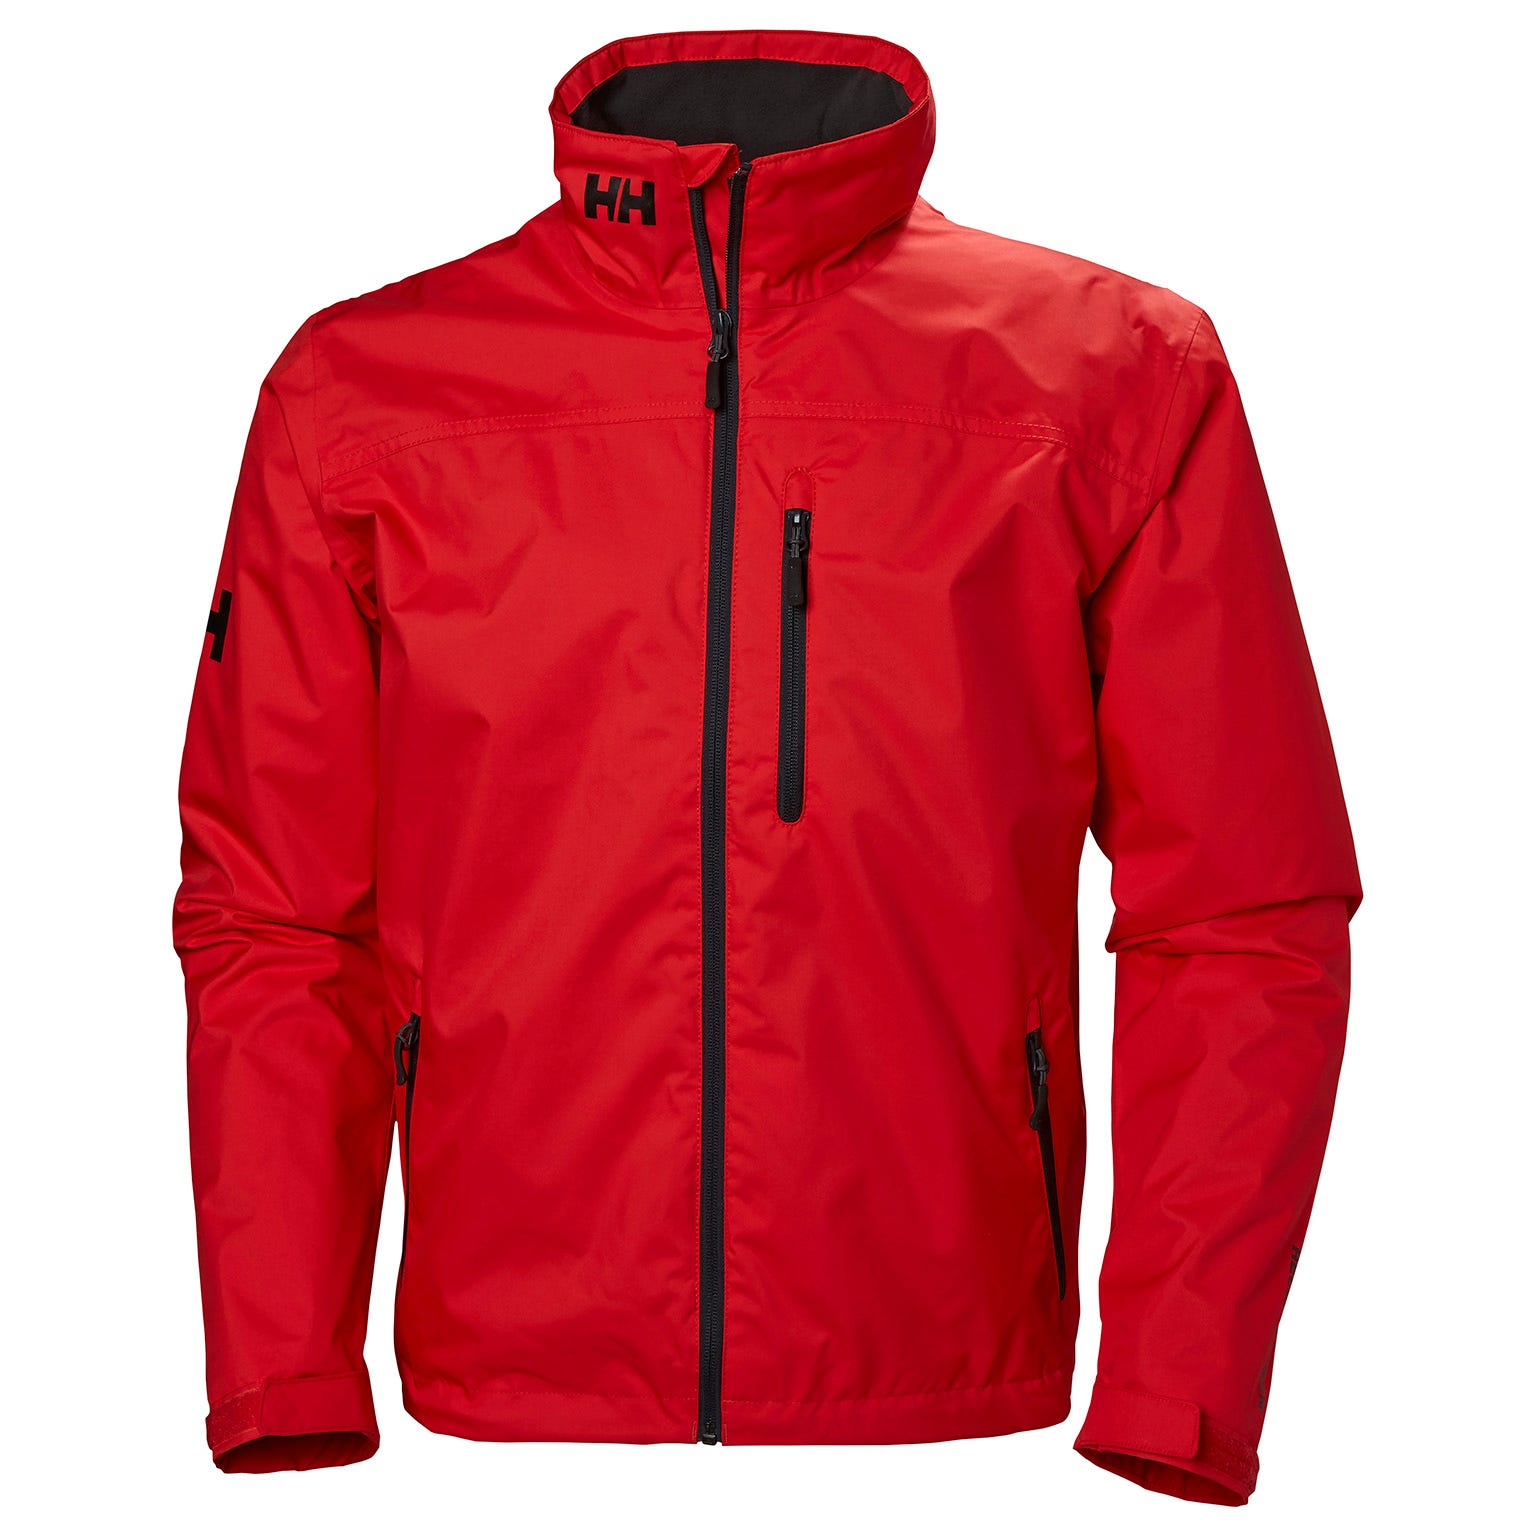 Helly Hansen Mens Sailing Jacket Red S